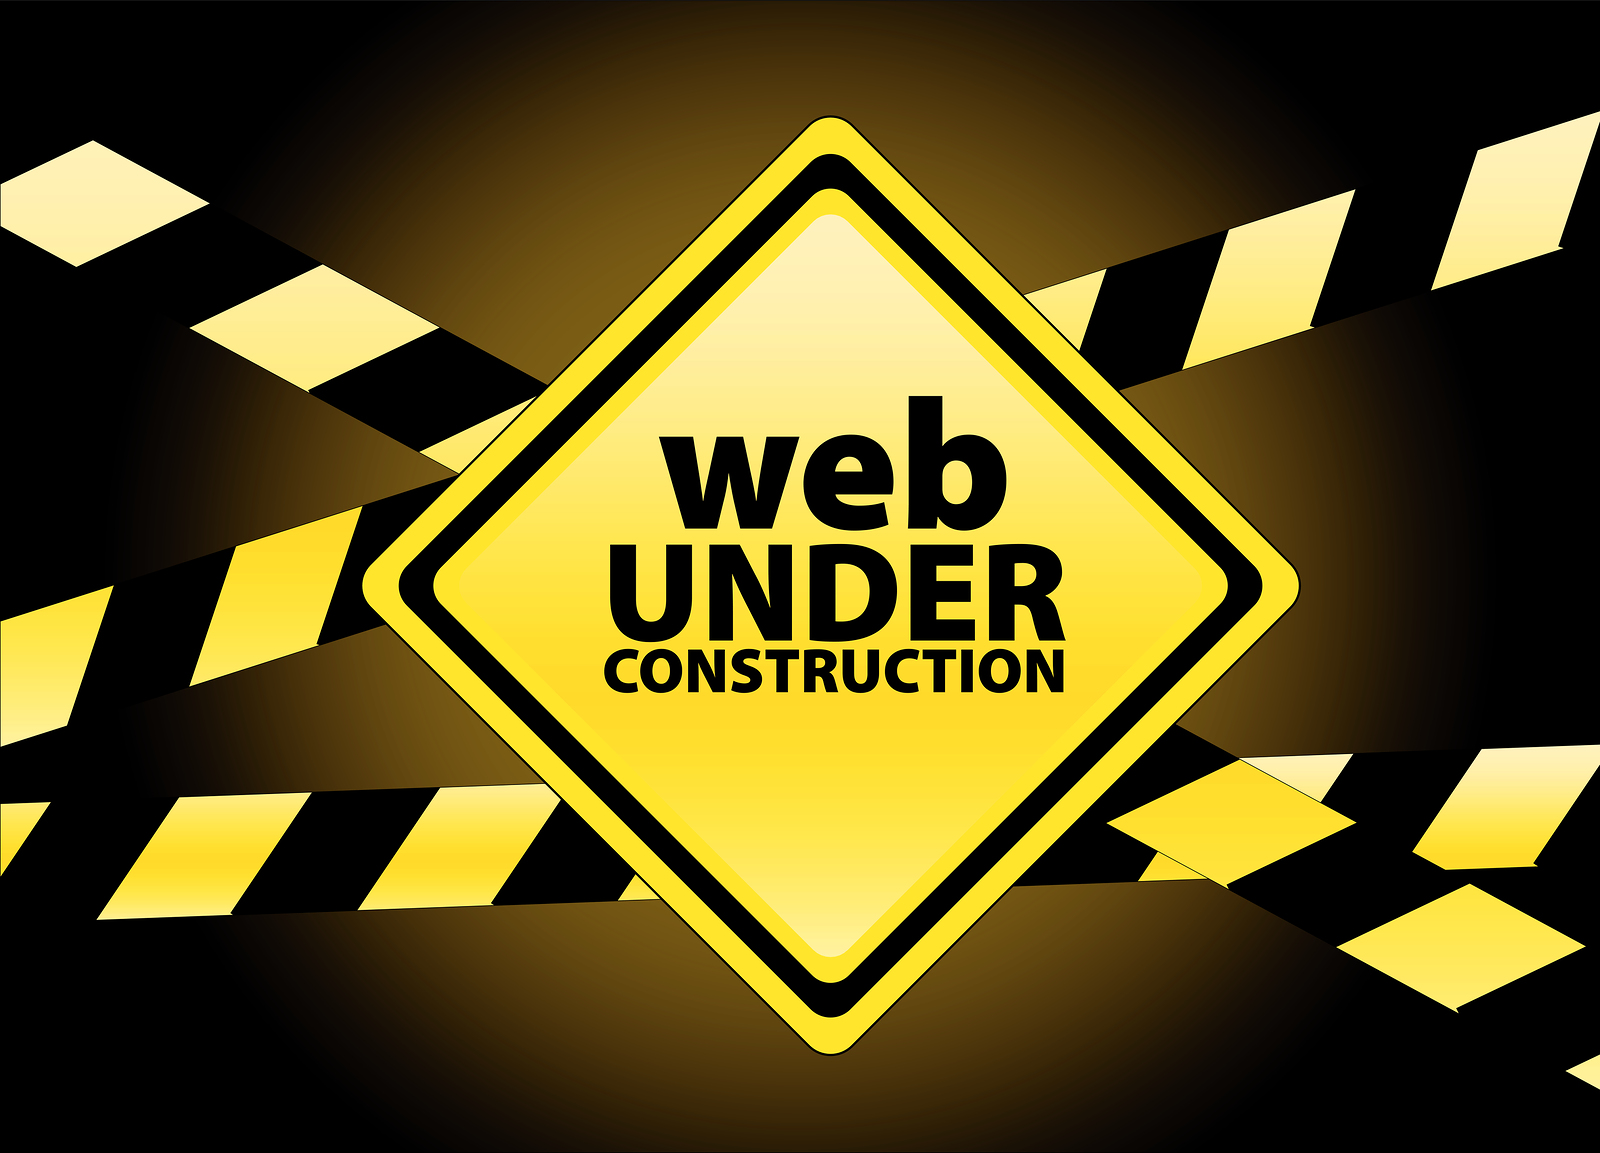 Life Under Construction Signs Images & Pictures - Becuo Under Construction Signs